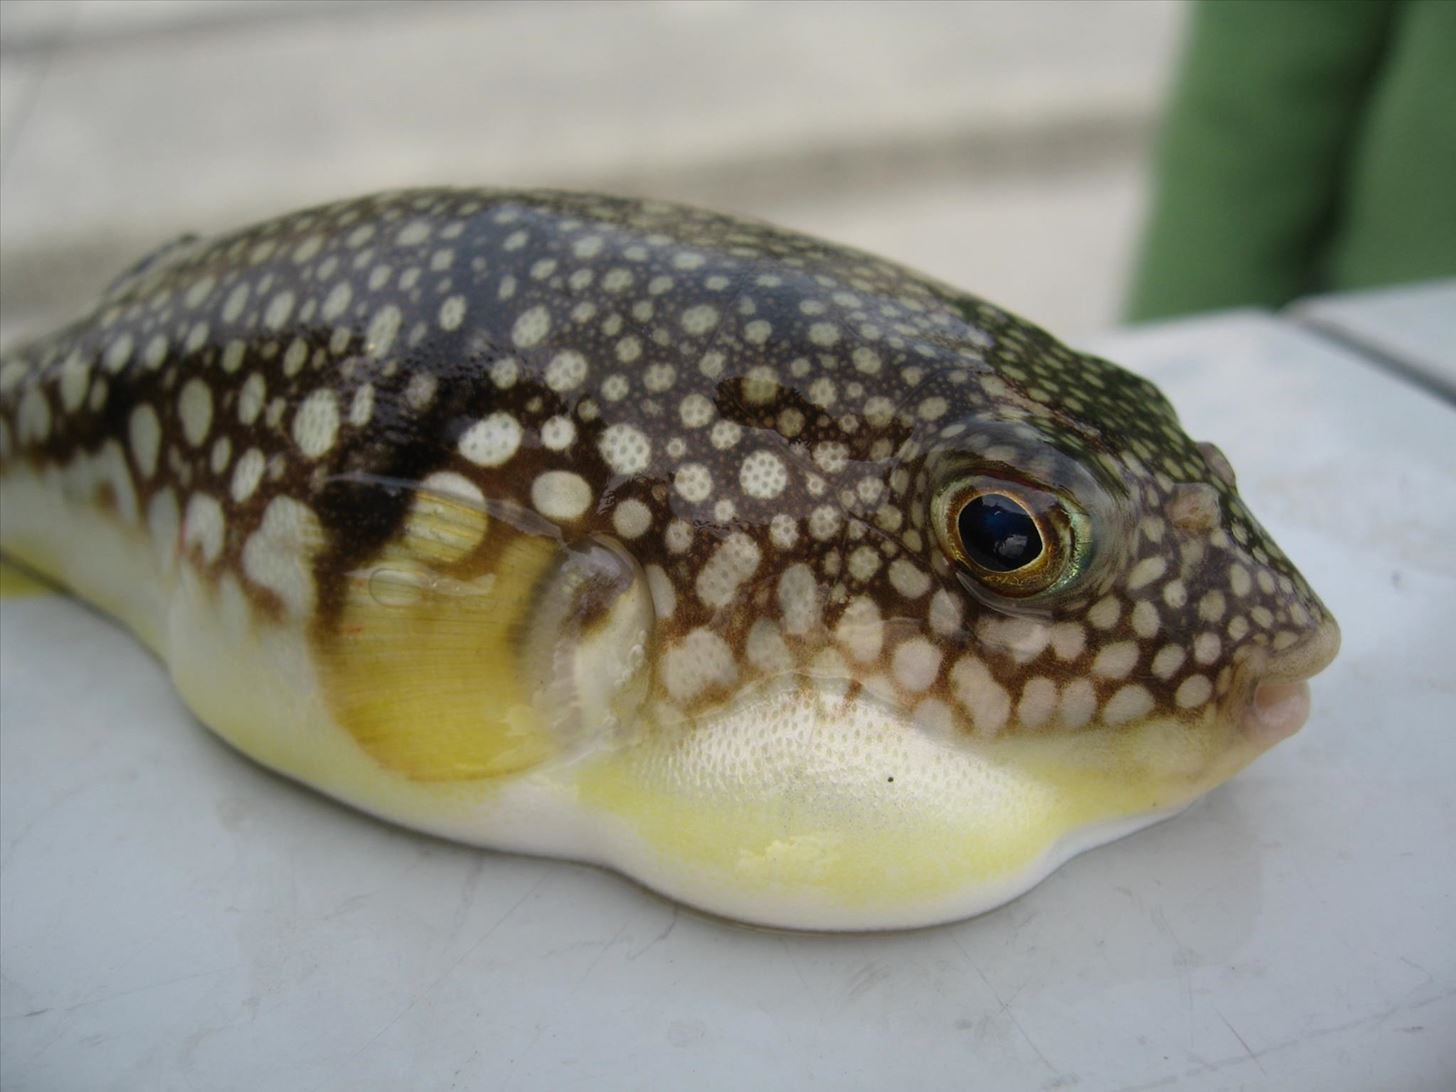 Weird Ingredient Wednesday: Would You Risk Your Life to Eat This Deadly Fish?